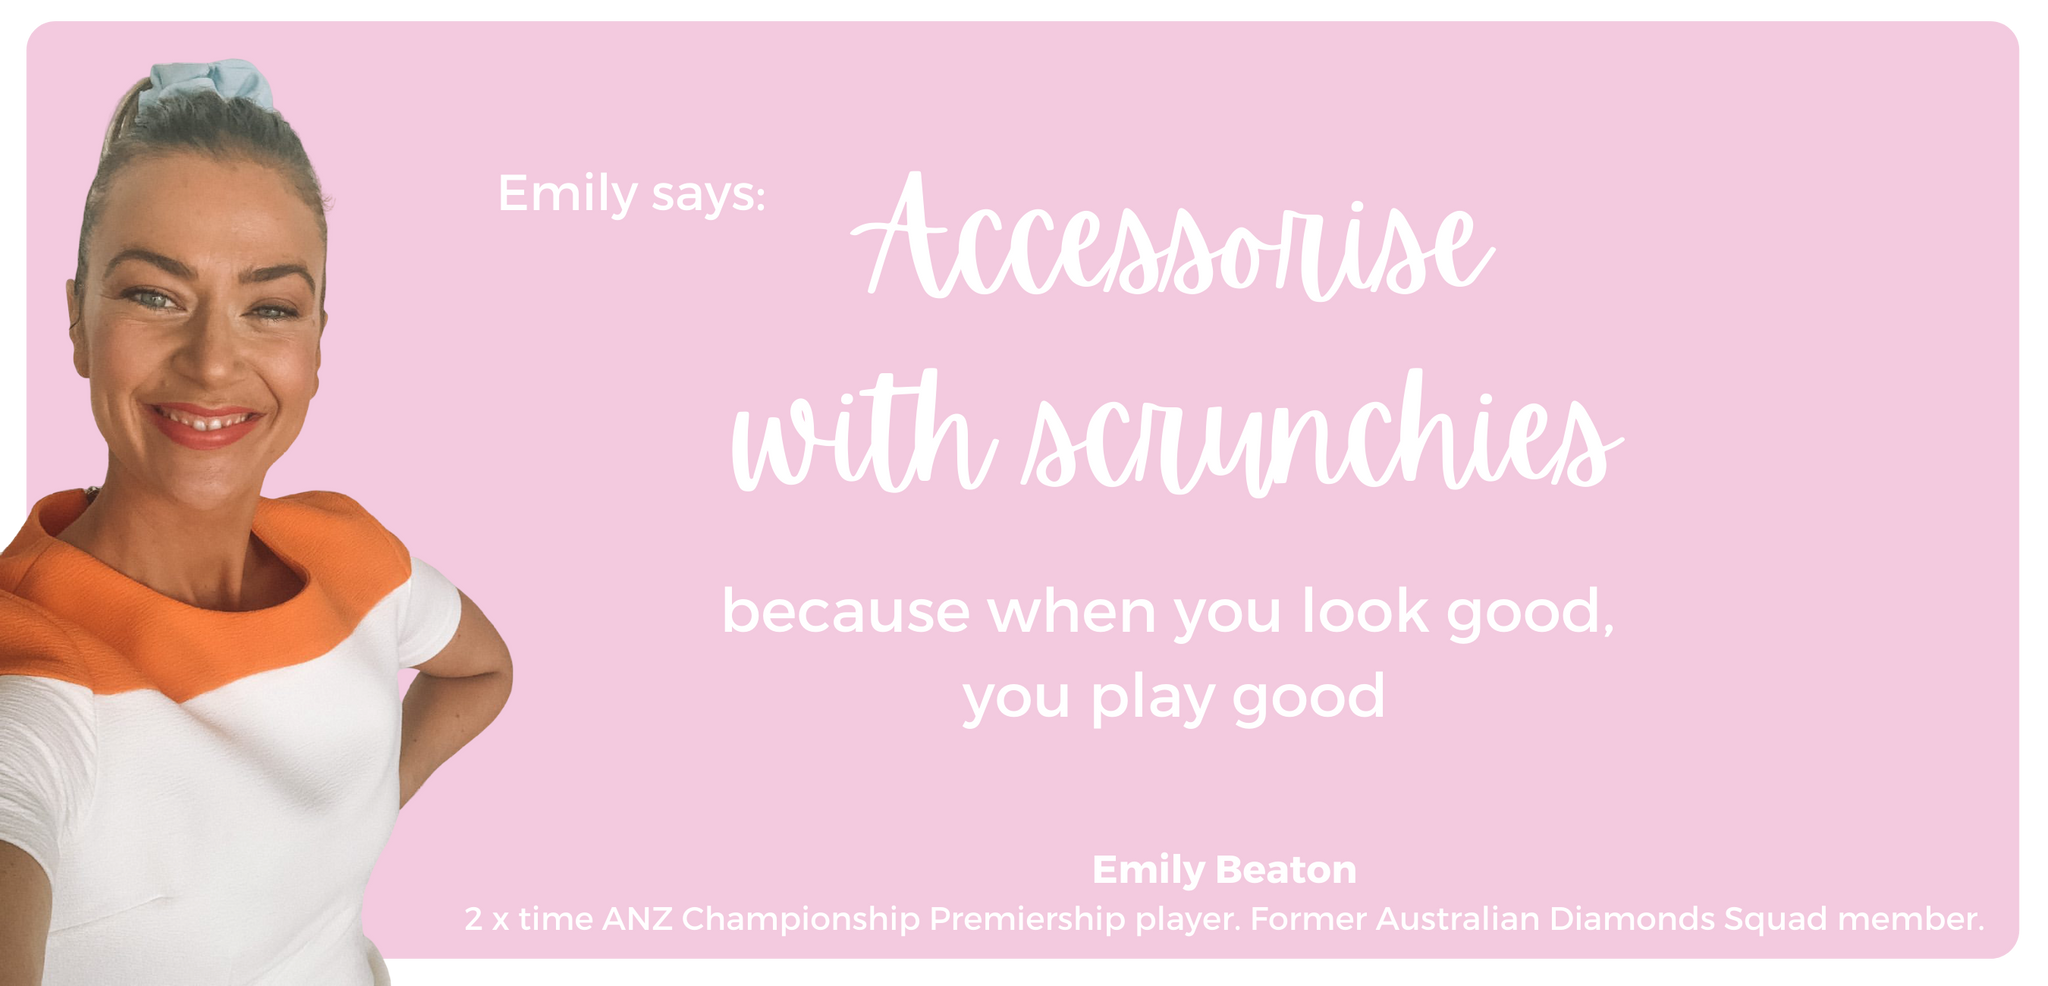 Emily Beaton - Adelaide Thunderbirds, Suncorp Netball - Accessorise with scrunchies, because when you look good, you play good. Wearing Ponytails and Fairytales.